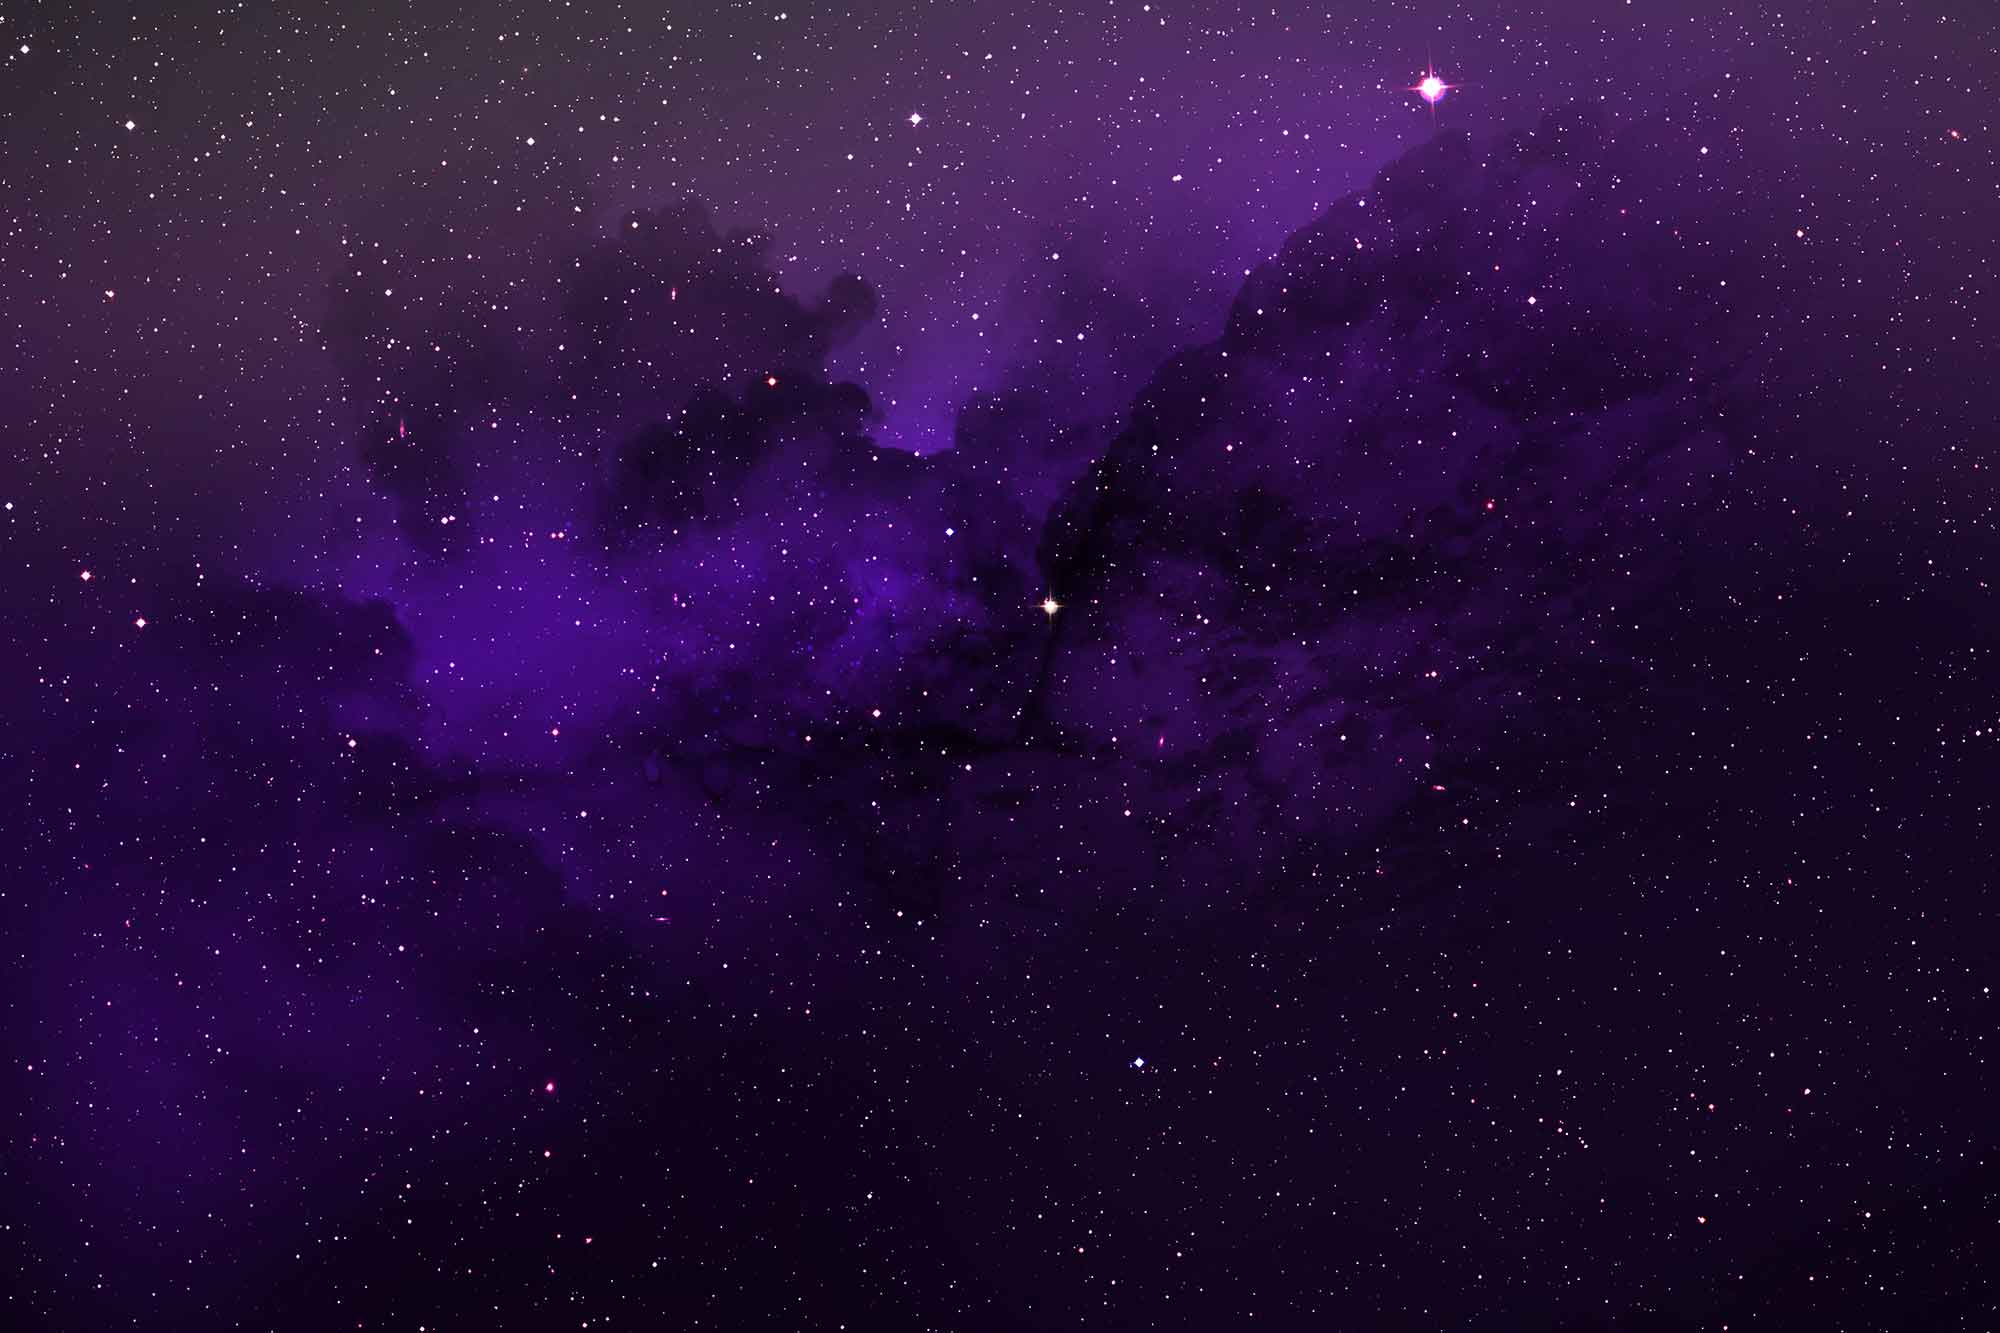 Space Background Image 6